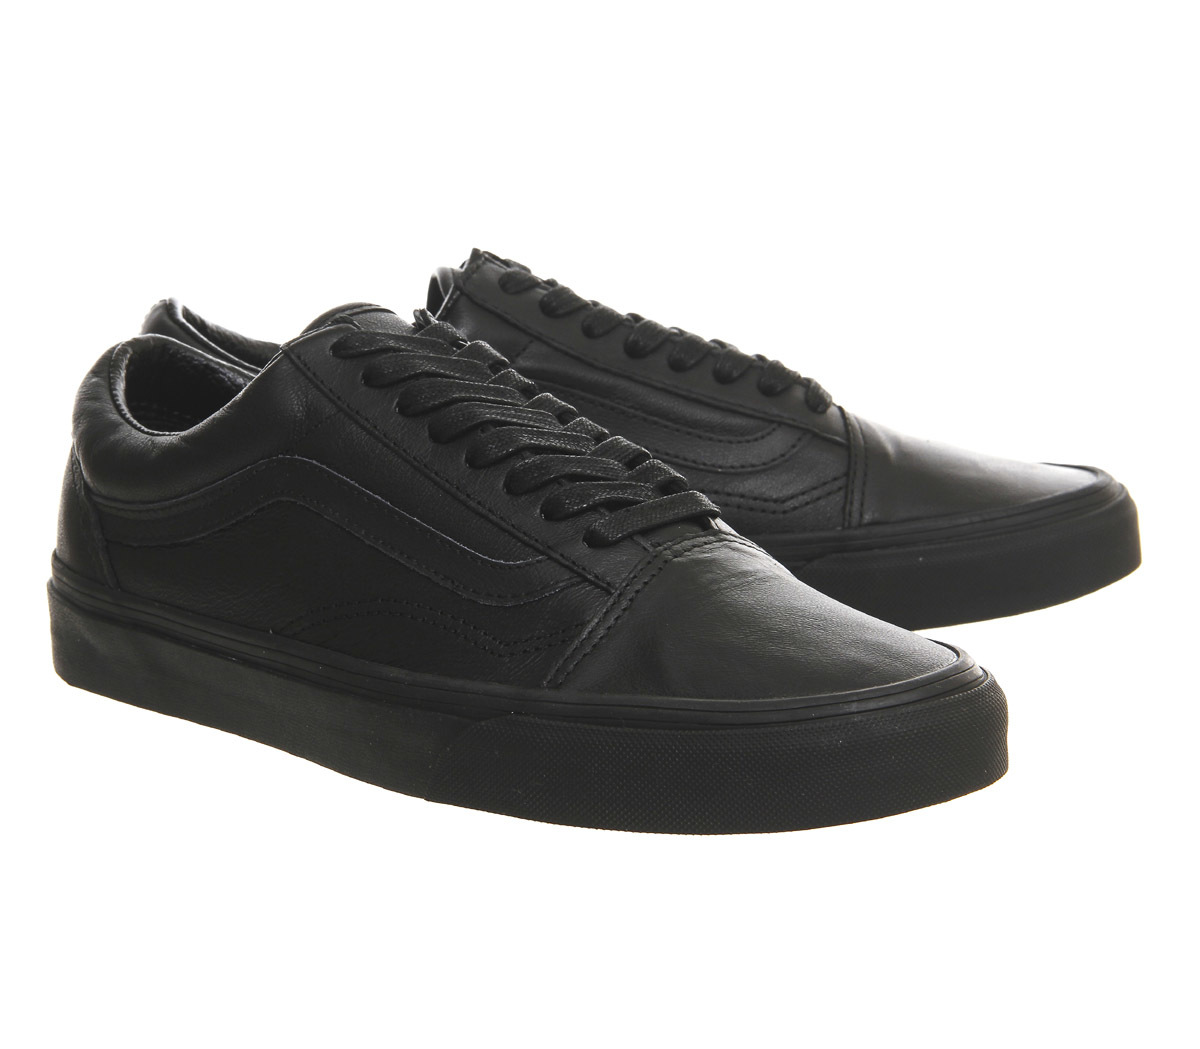 vans shoes old skool black leather us size school work. Black Bedroom Furniture Sets. Home Design Ideas